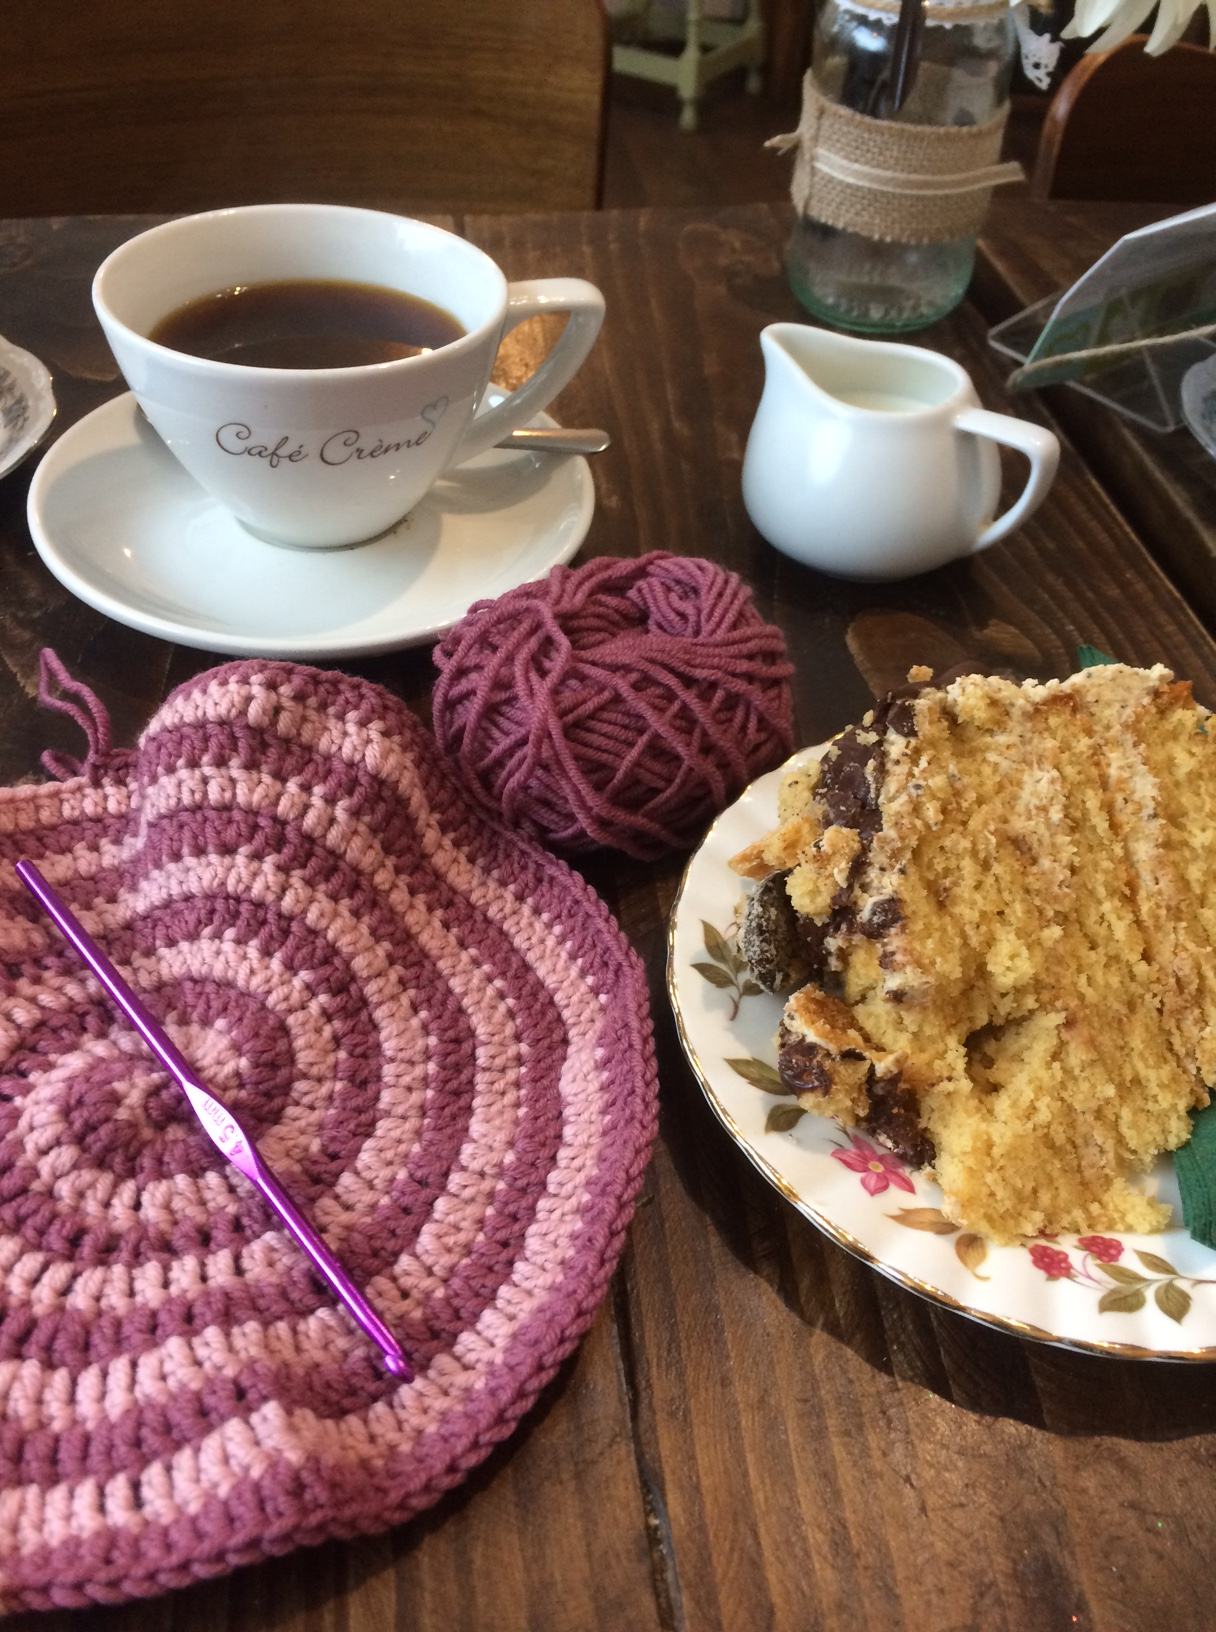 Crocheting Spirals with coffee and cake